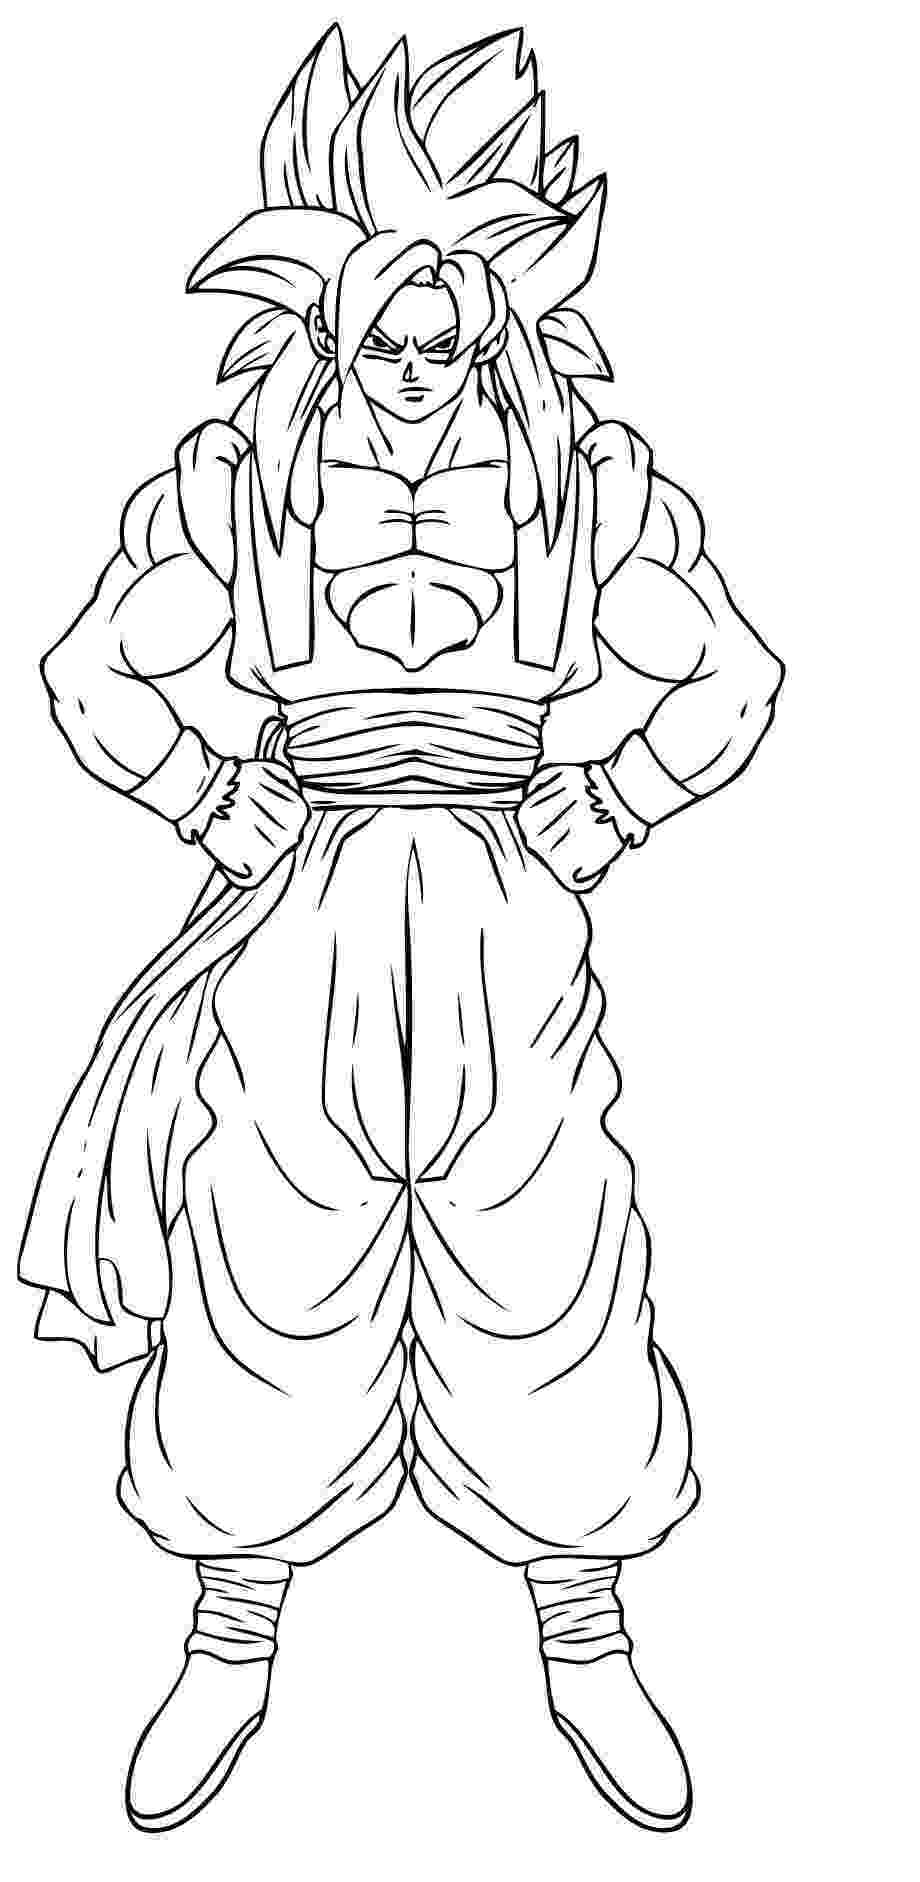 dragon ball z kai coloring pages free printable dragon ball z coloring pages for kids dragon kai coloring pages z ball